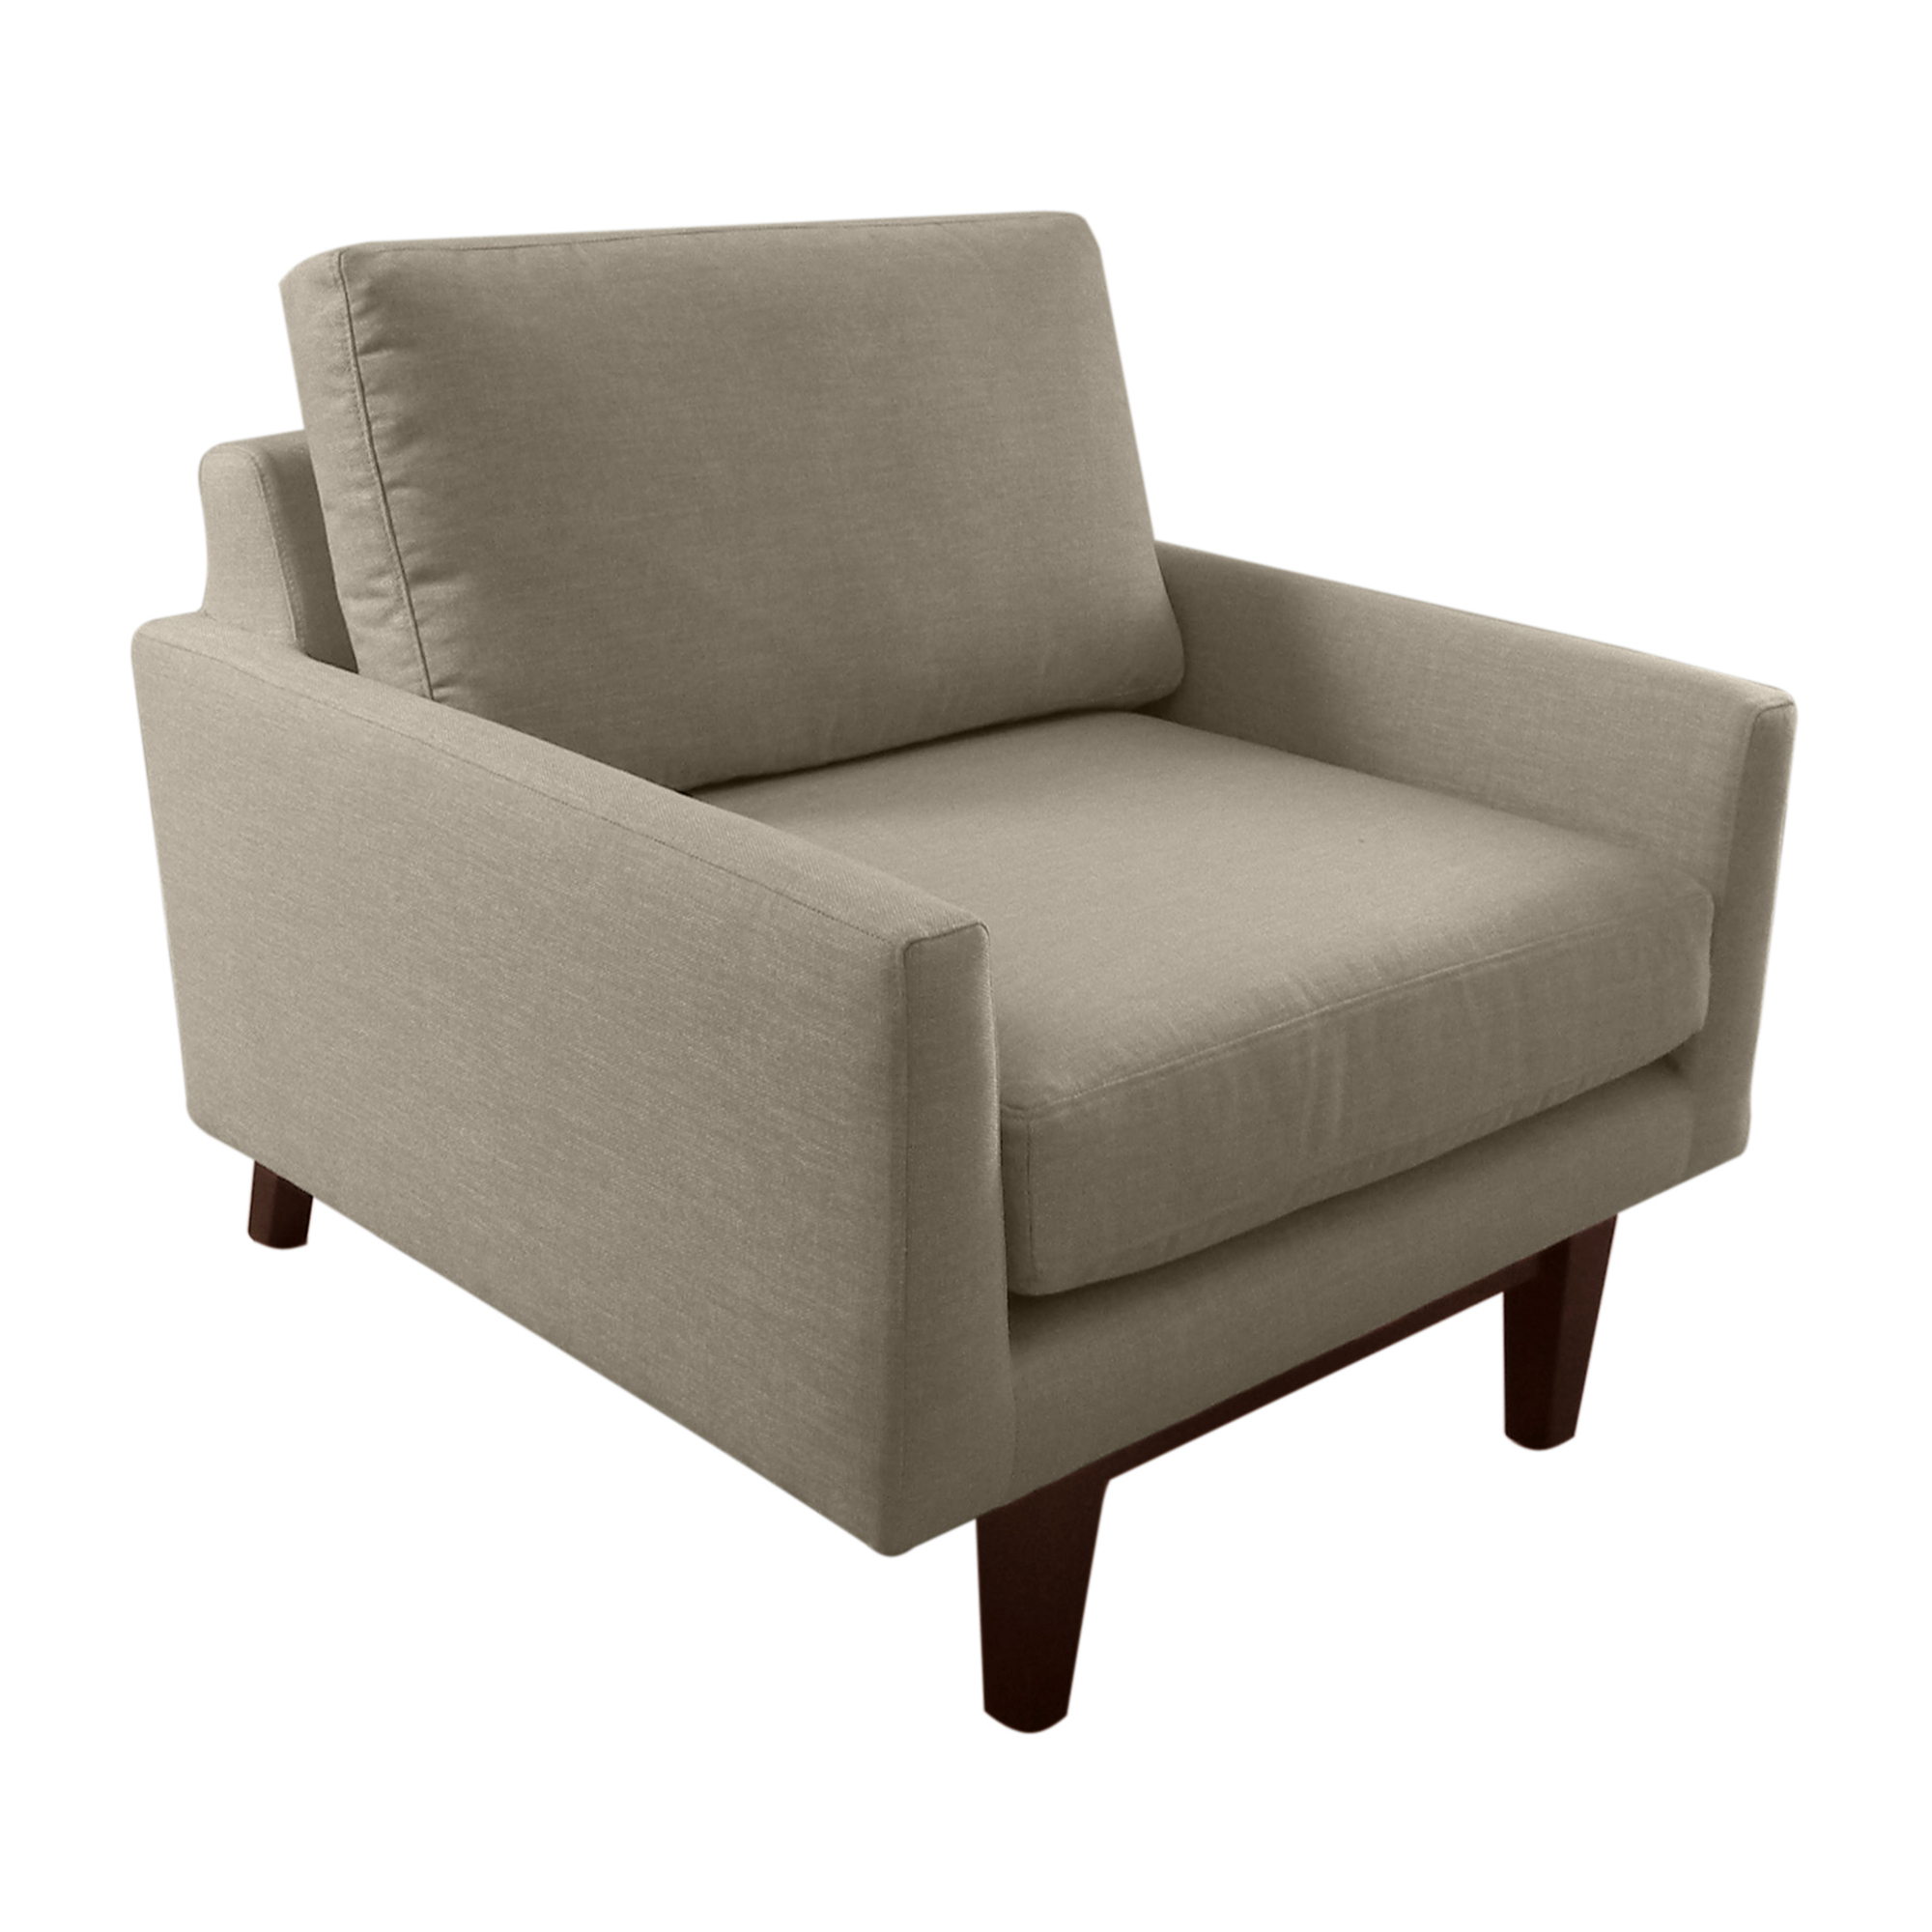 Maria Yee Ingrid Chair